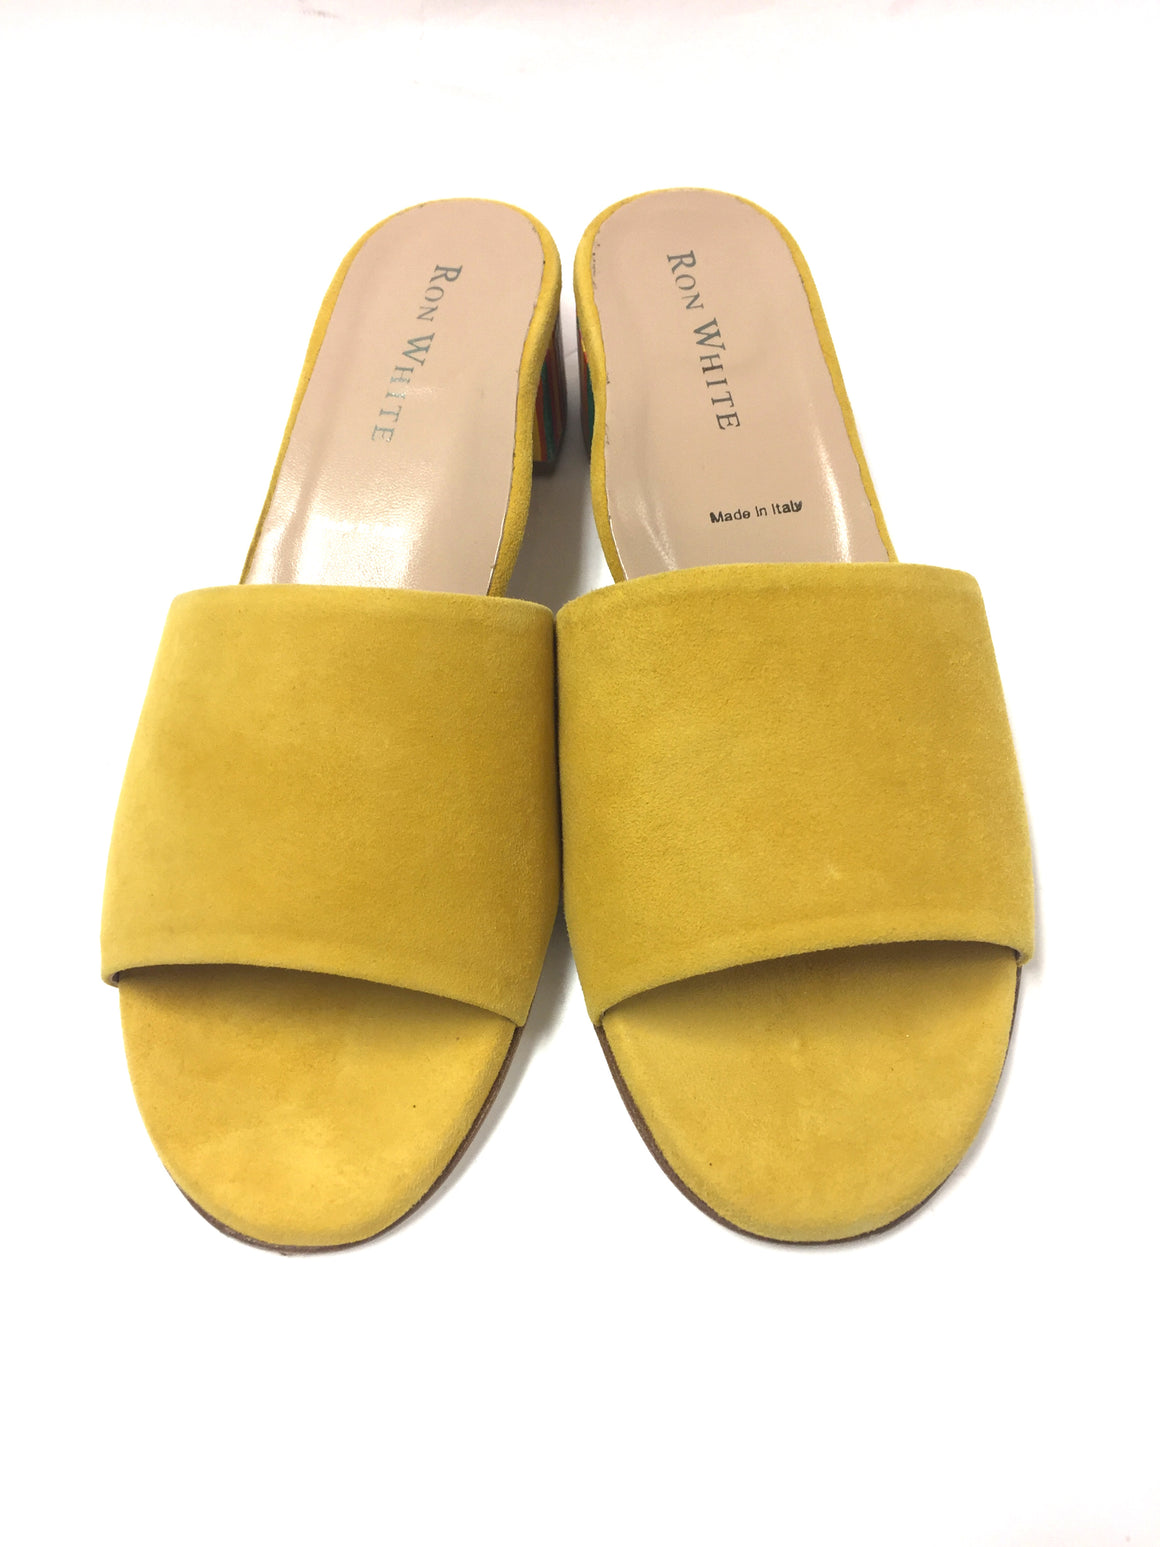 RON WHITE    Lemon-Yellow Cashmere Suede Rainbow Heels  ESMARIE Mules Sandals Shoes  Size: EU 38 / US 37.5